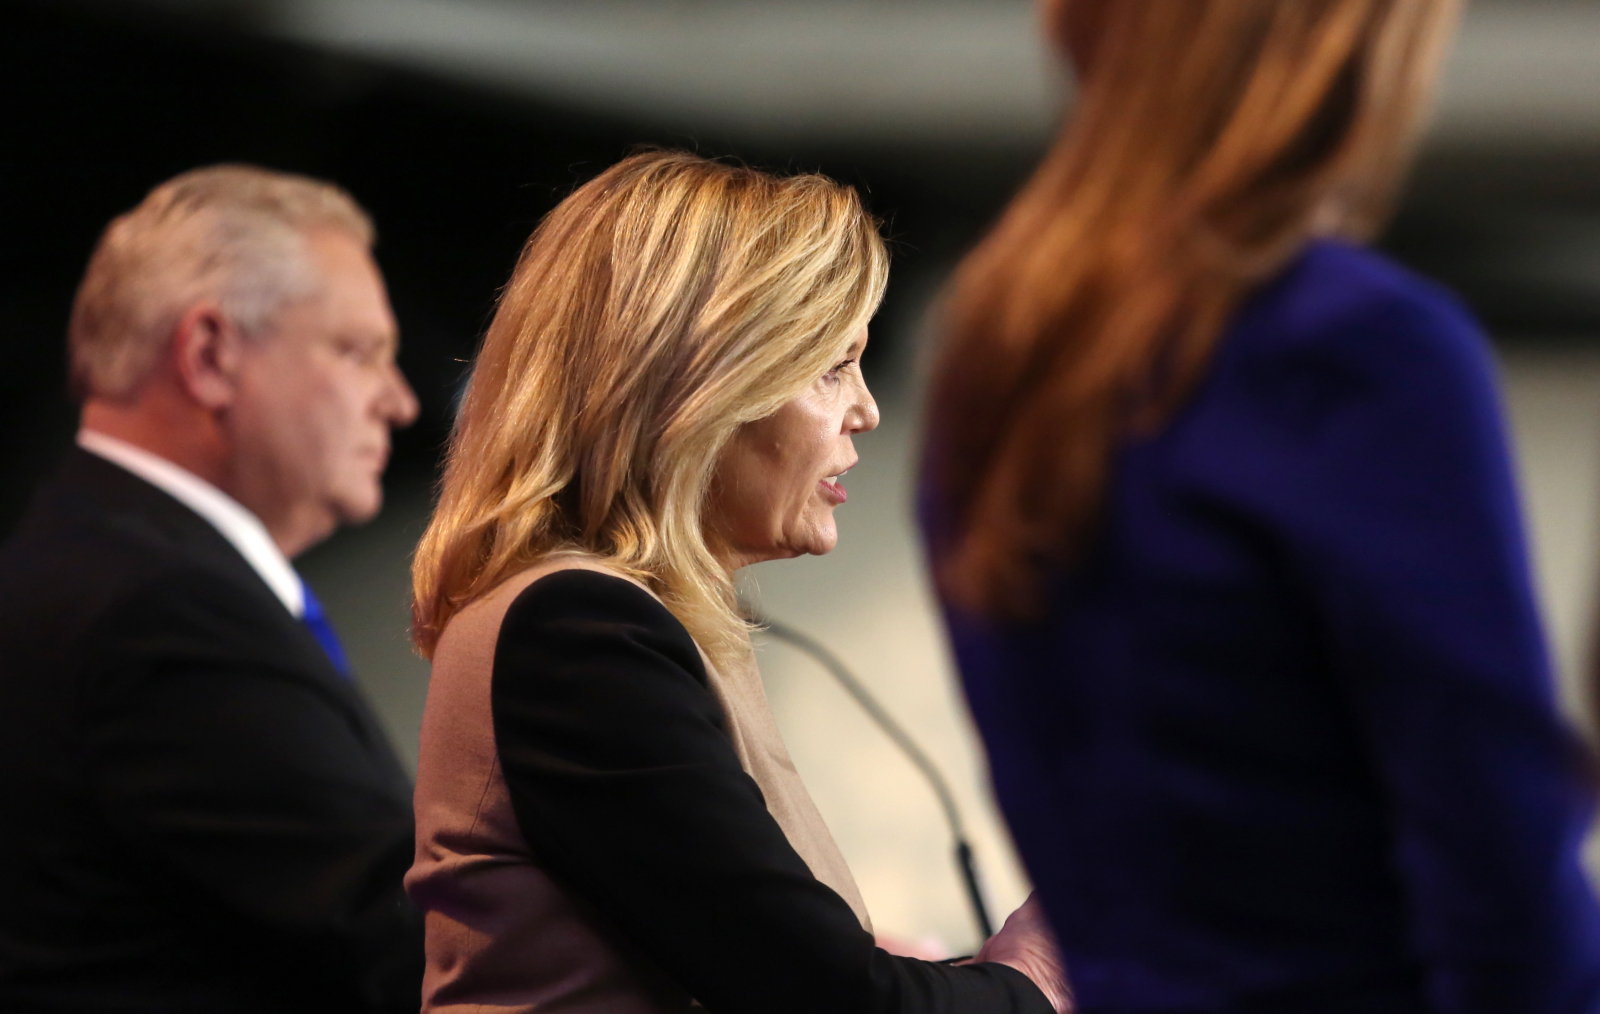 Doug Ford, Progressive Conservative Party of Ontario, Christine Elliott, Caroline Mulroney, Ottawa, debate